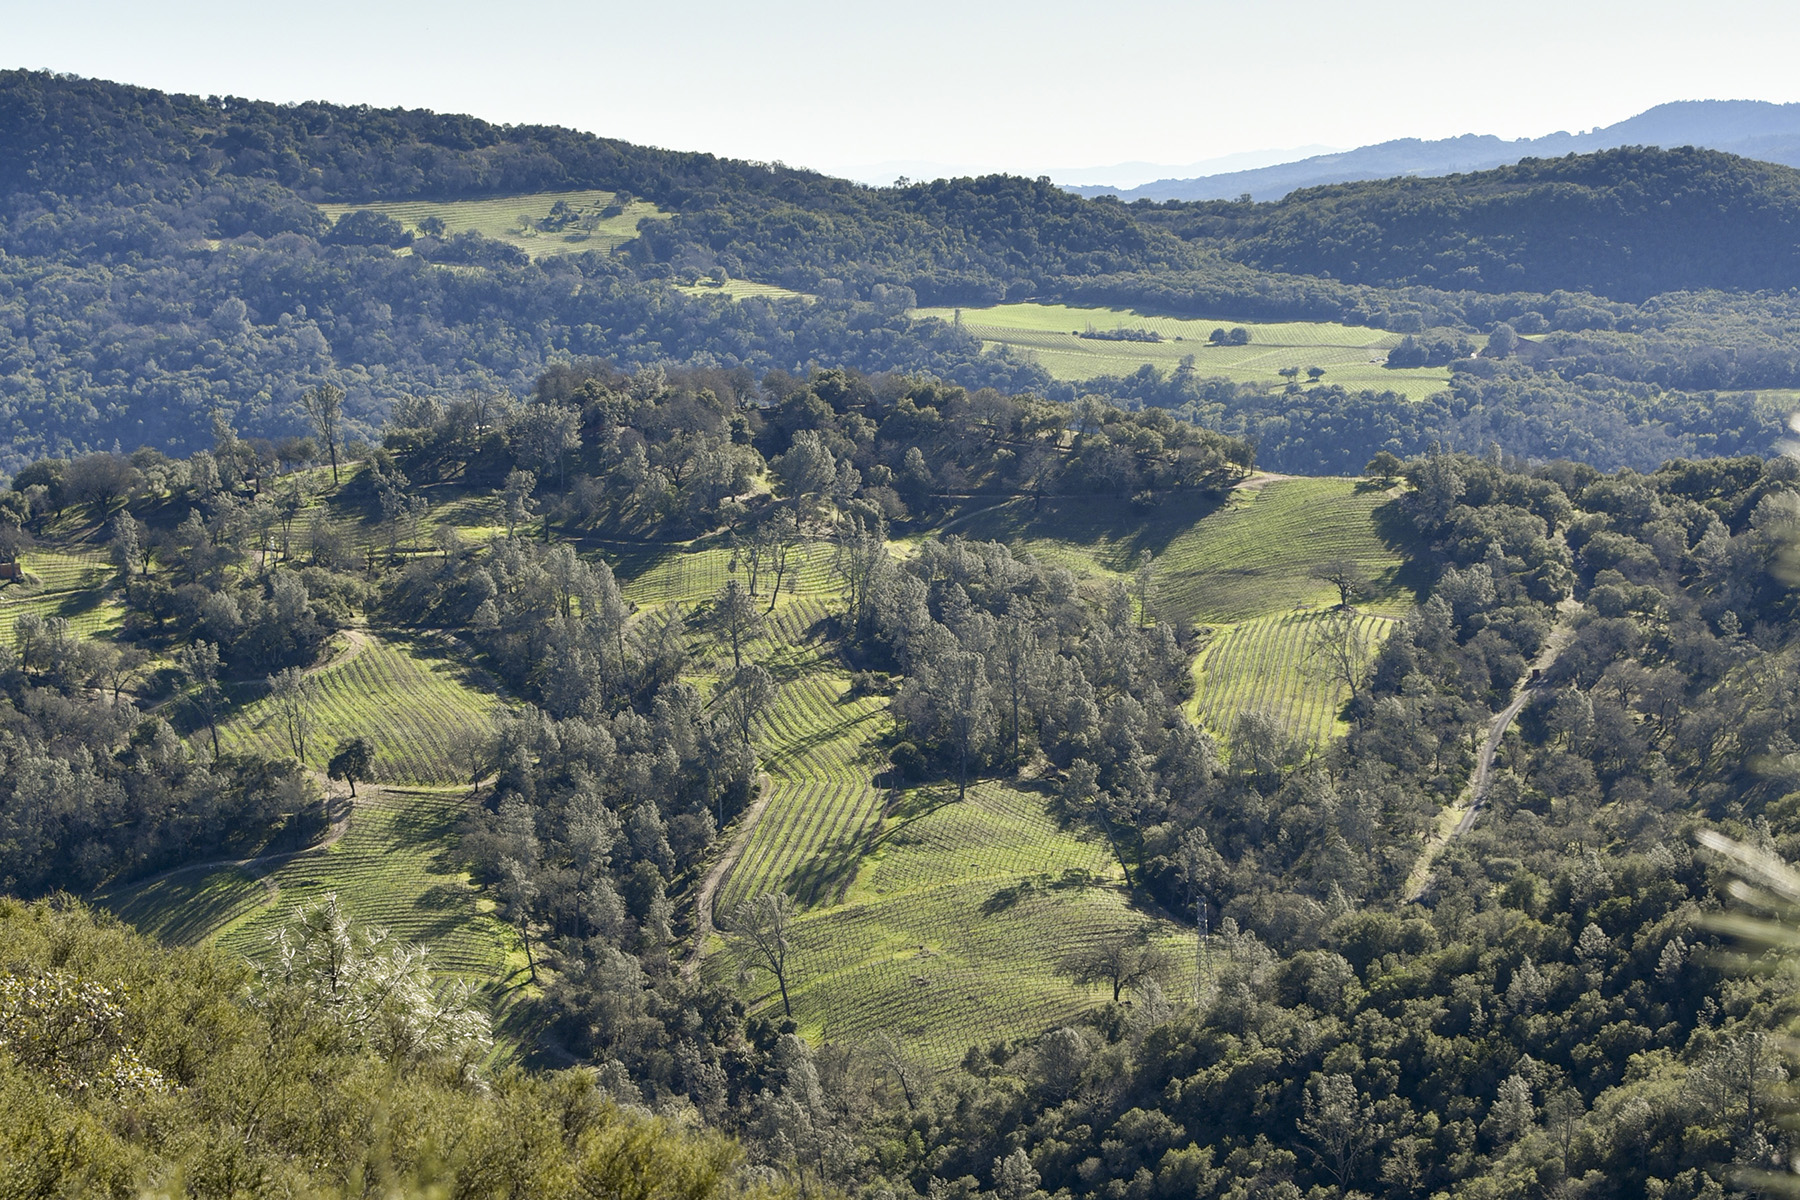 Other Residential for Sale at 0 Lower Chiles Valley Rd, St. Helena, CA 94574 0 Lower Chiles Valley Rd St. Helena, California, 94574 United States